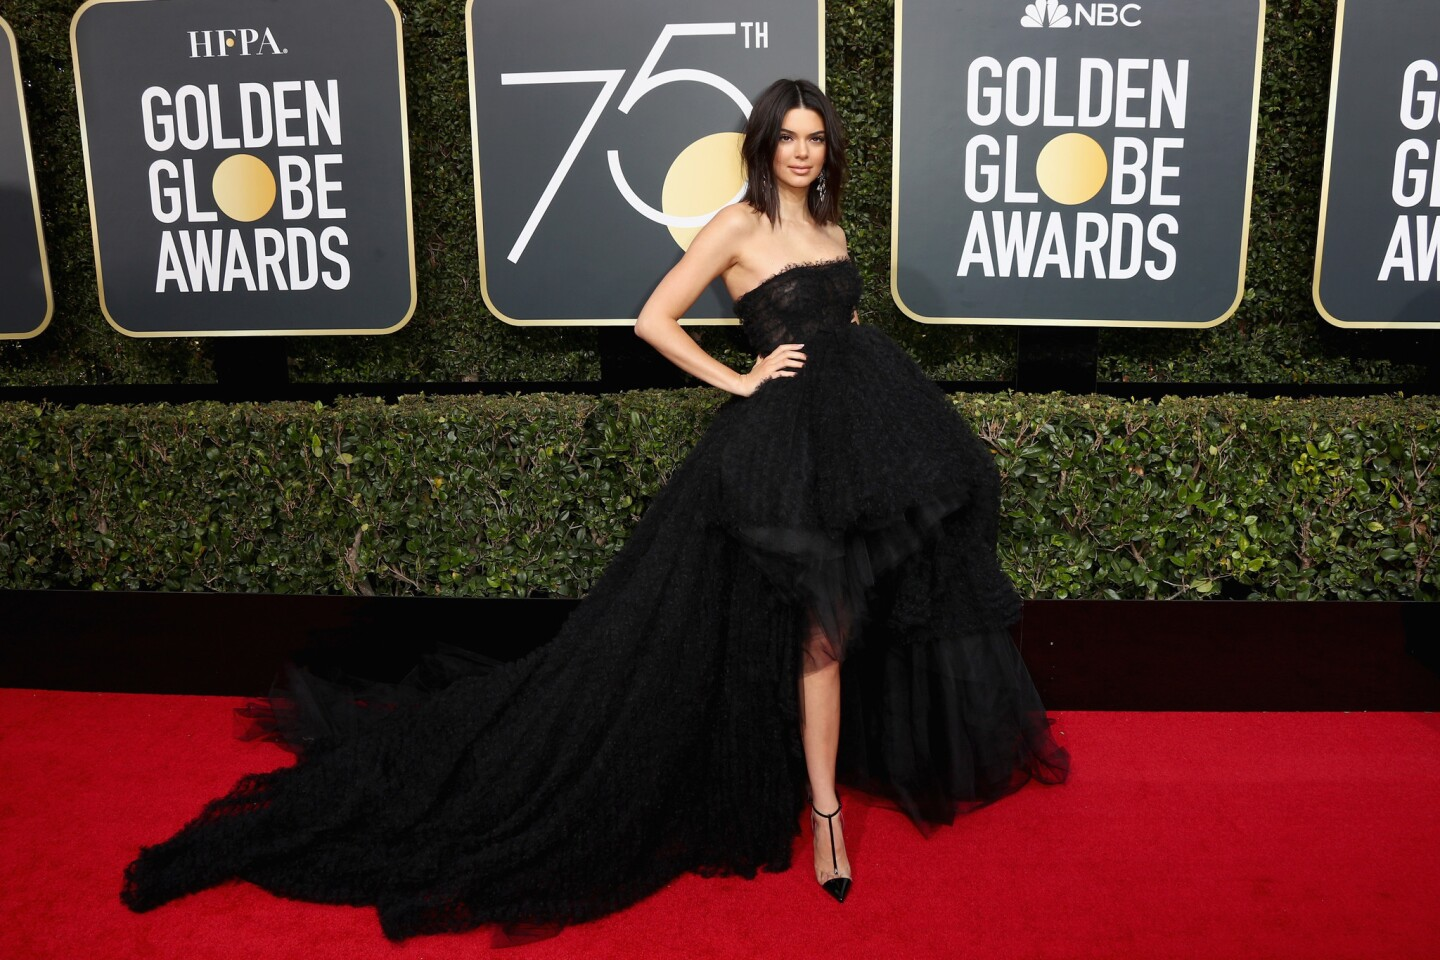 BEVERLY HILLS, CA - JANUARY 07: Kendall Jenner attends The 75th Annual Golden Globe Awards at The Beverly Hilton Hotel on January 7, 2018 in Beverly Hills, California. (Photo by Frederick M. Brown/Getty Images) ** OUTS - ELSENT, FPG, CM - OUTS * NM, PH, VA if sourced by CT, LA or MoD **